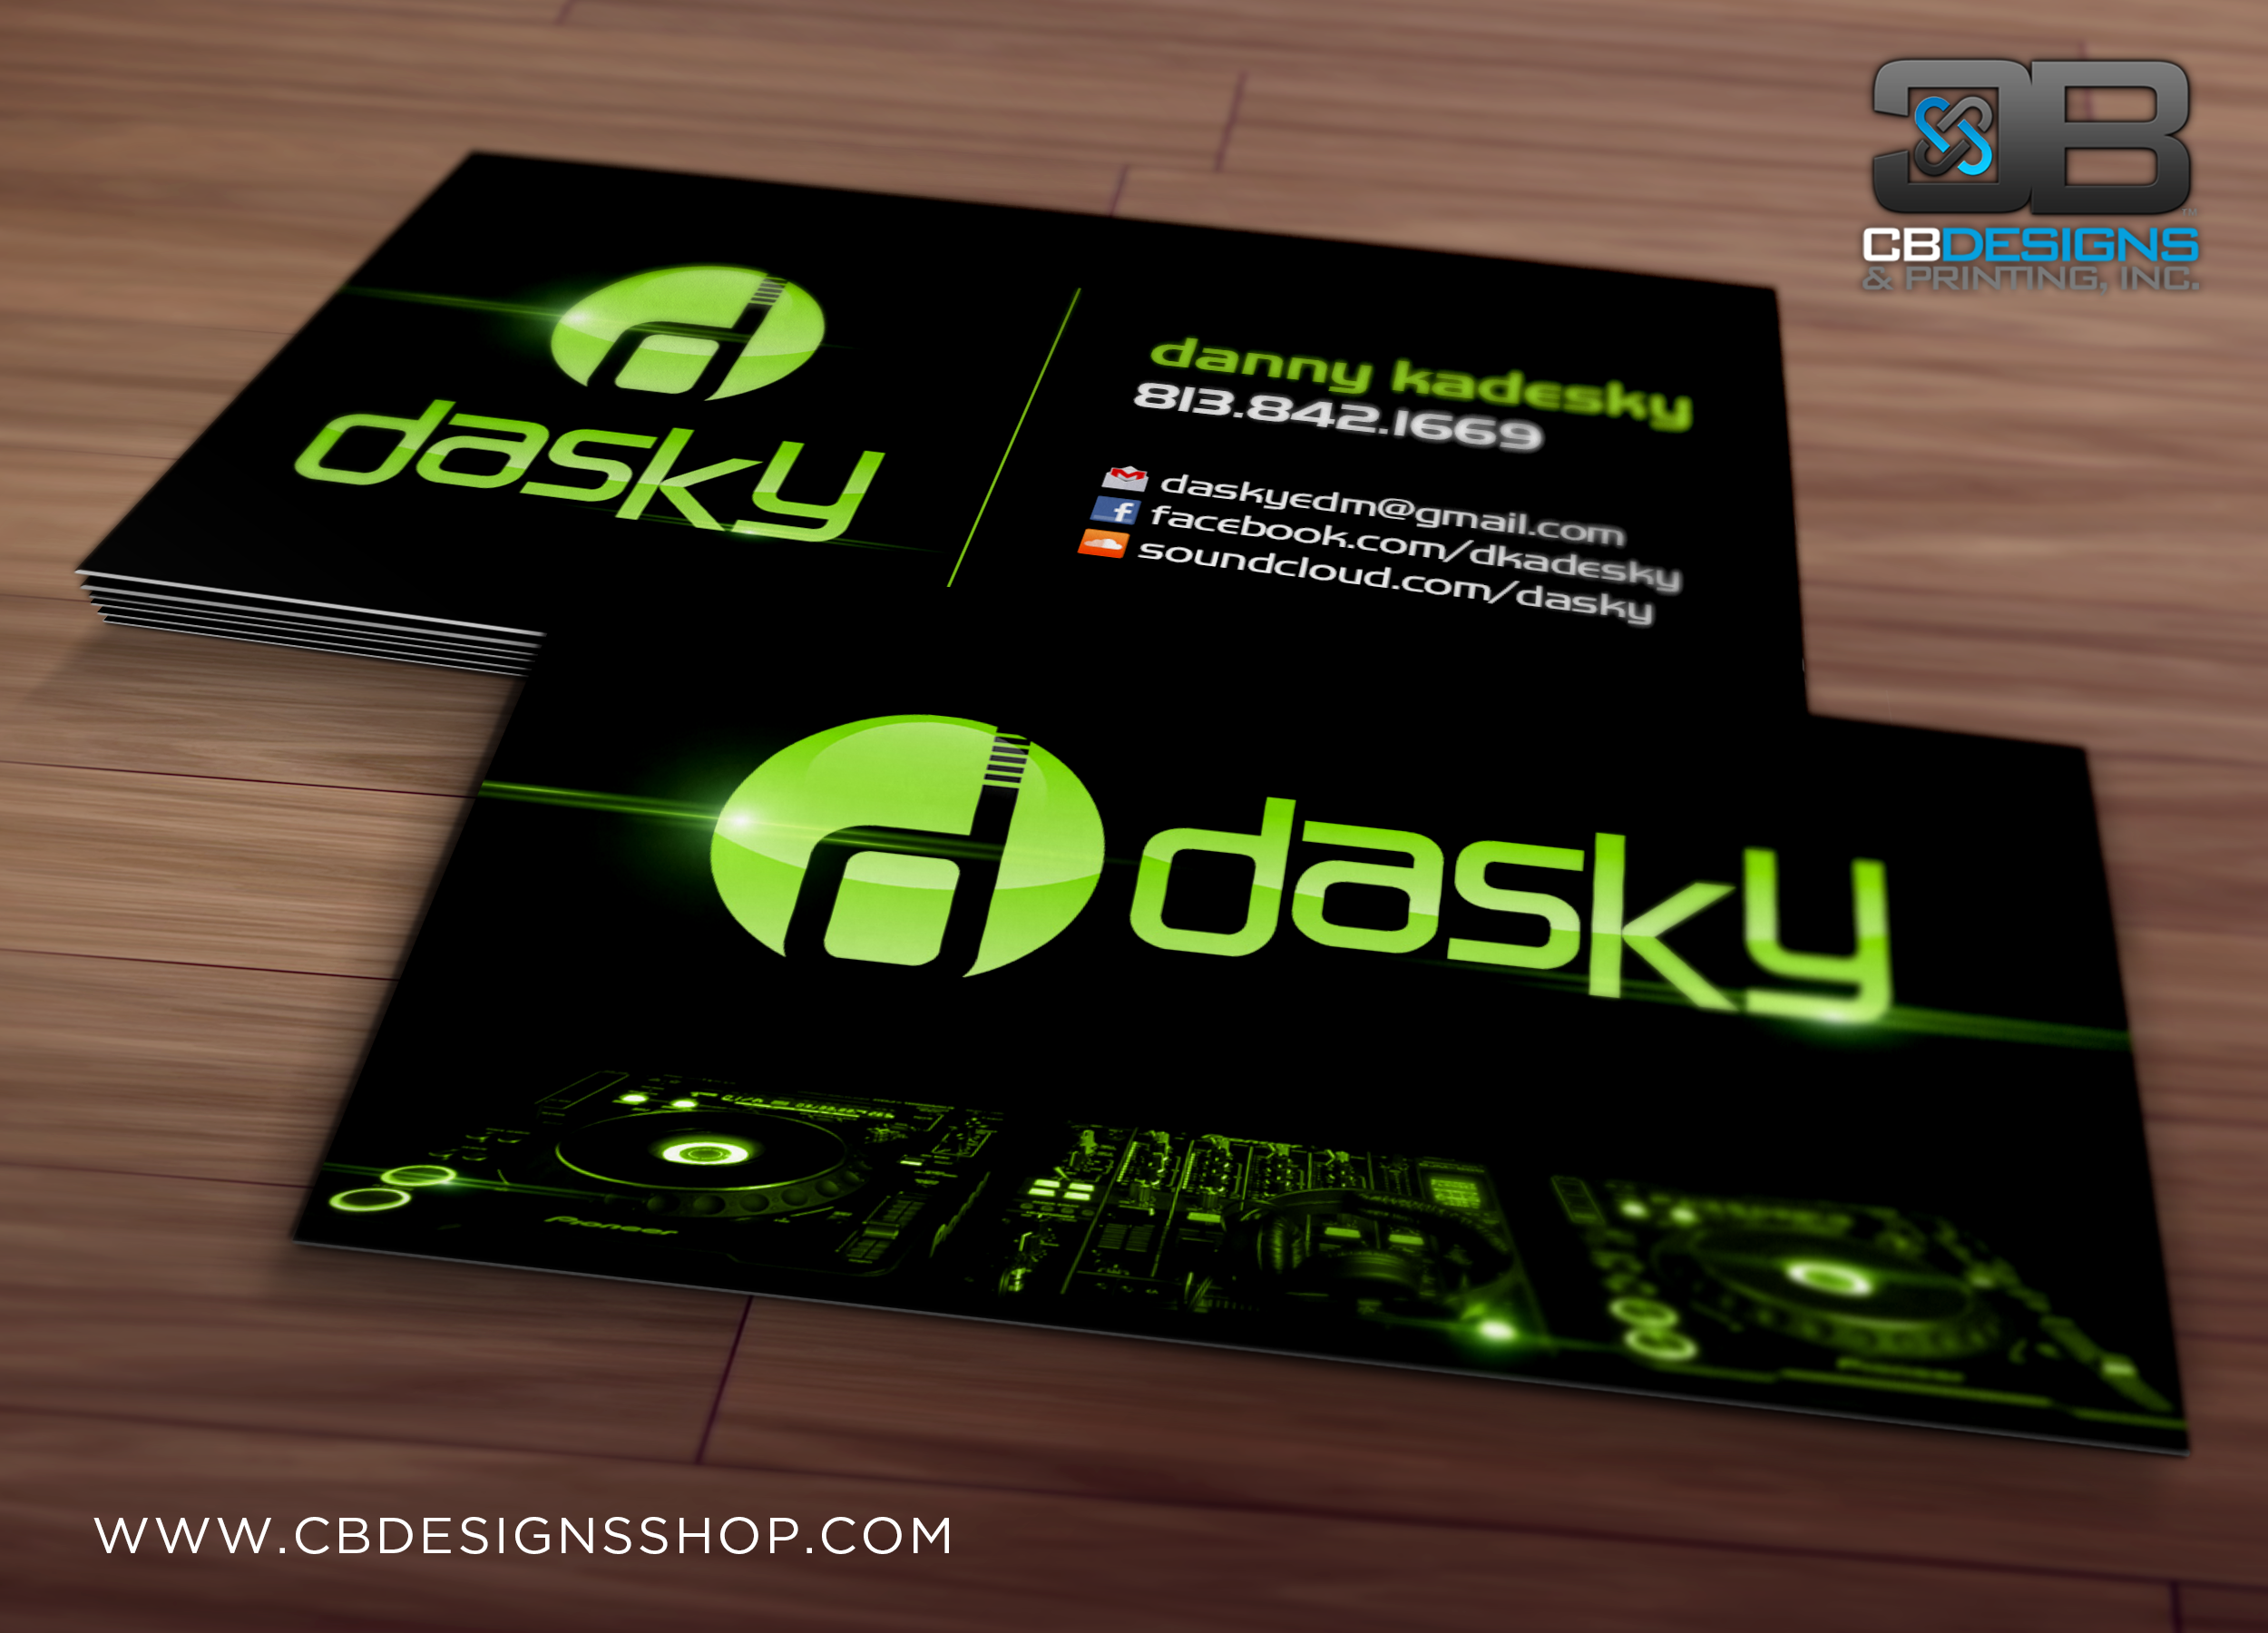 Dj Dasky Business Card Design Www Cbdesignsshop Com Free Business Card Templates Business Card Templates Download Free Business Card Design